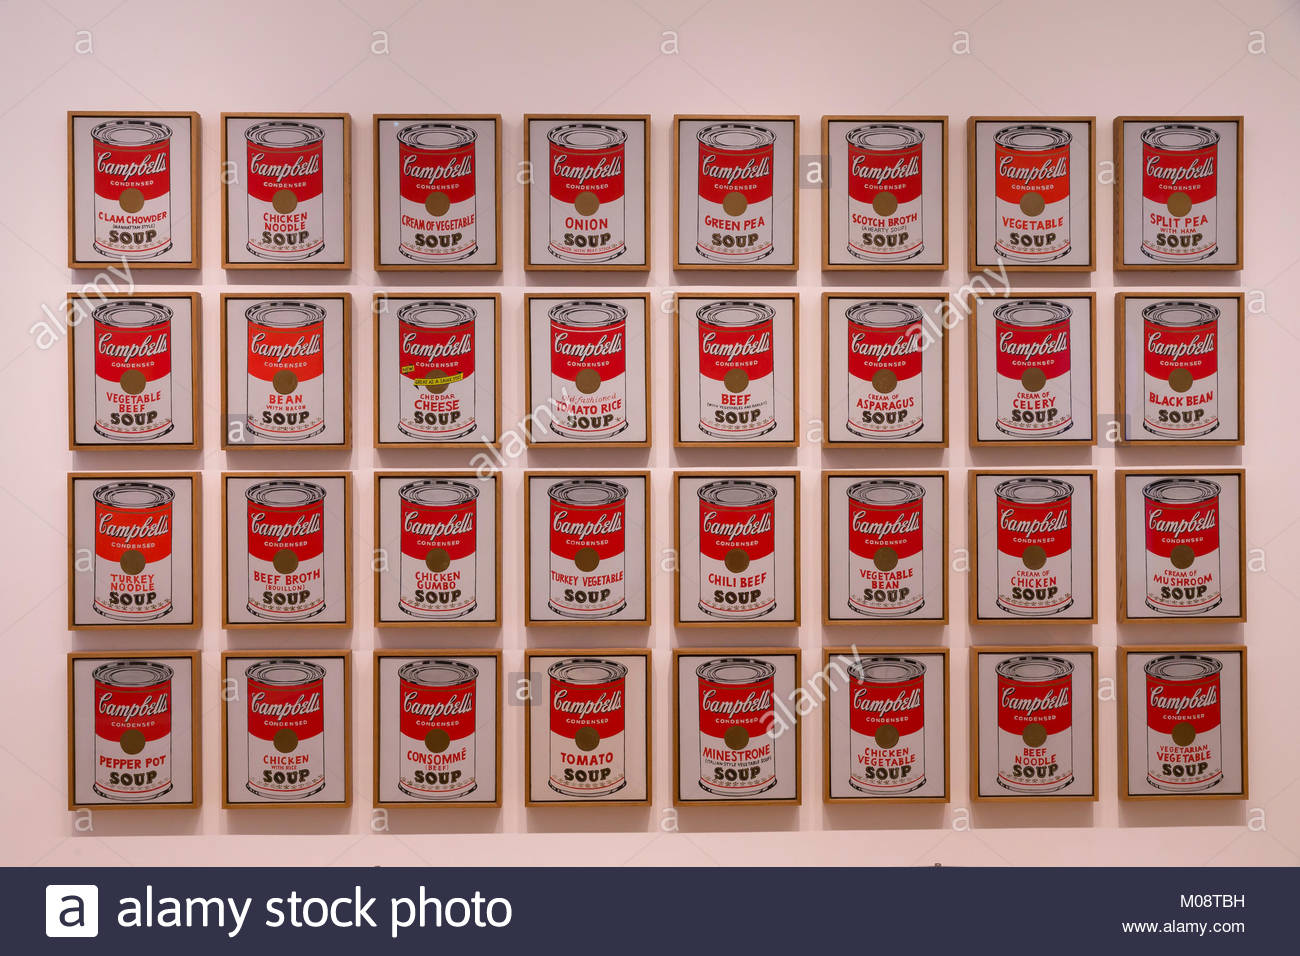 Campbells soup cans stock photos campbells soup cans for Barattoli di zuppa campbell s